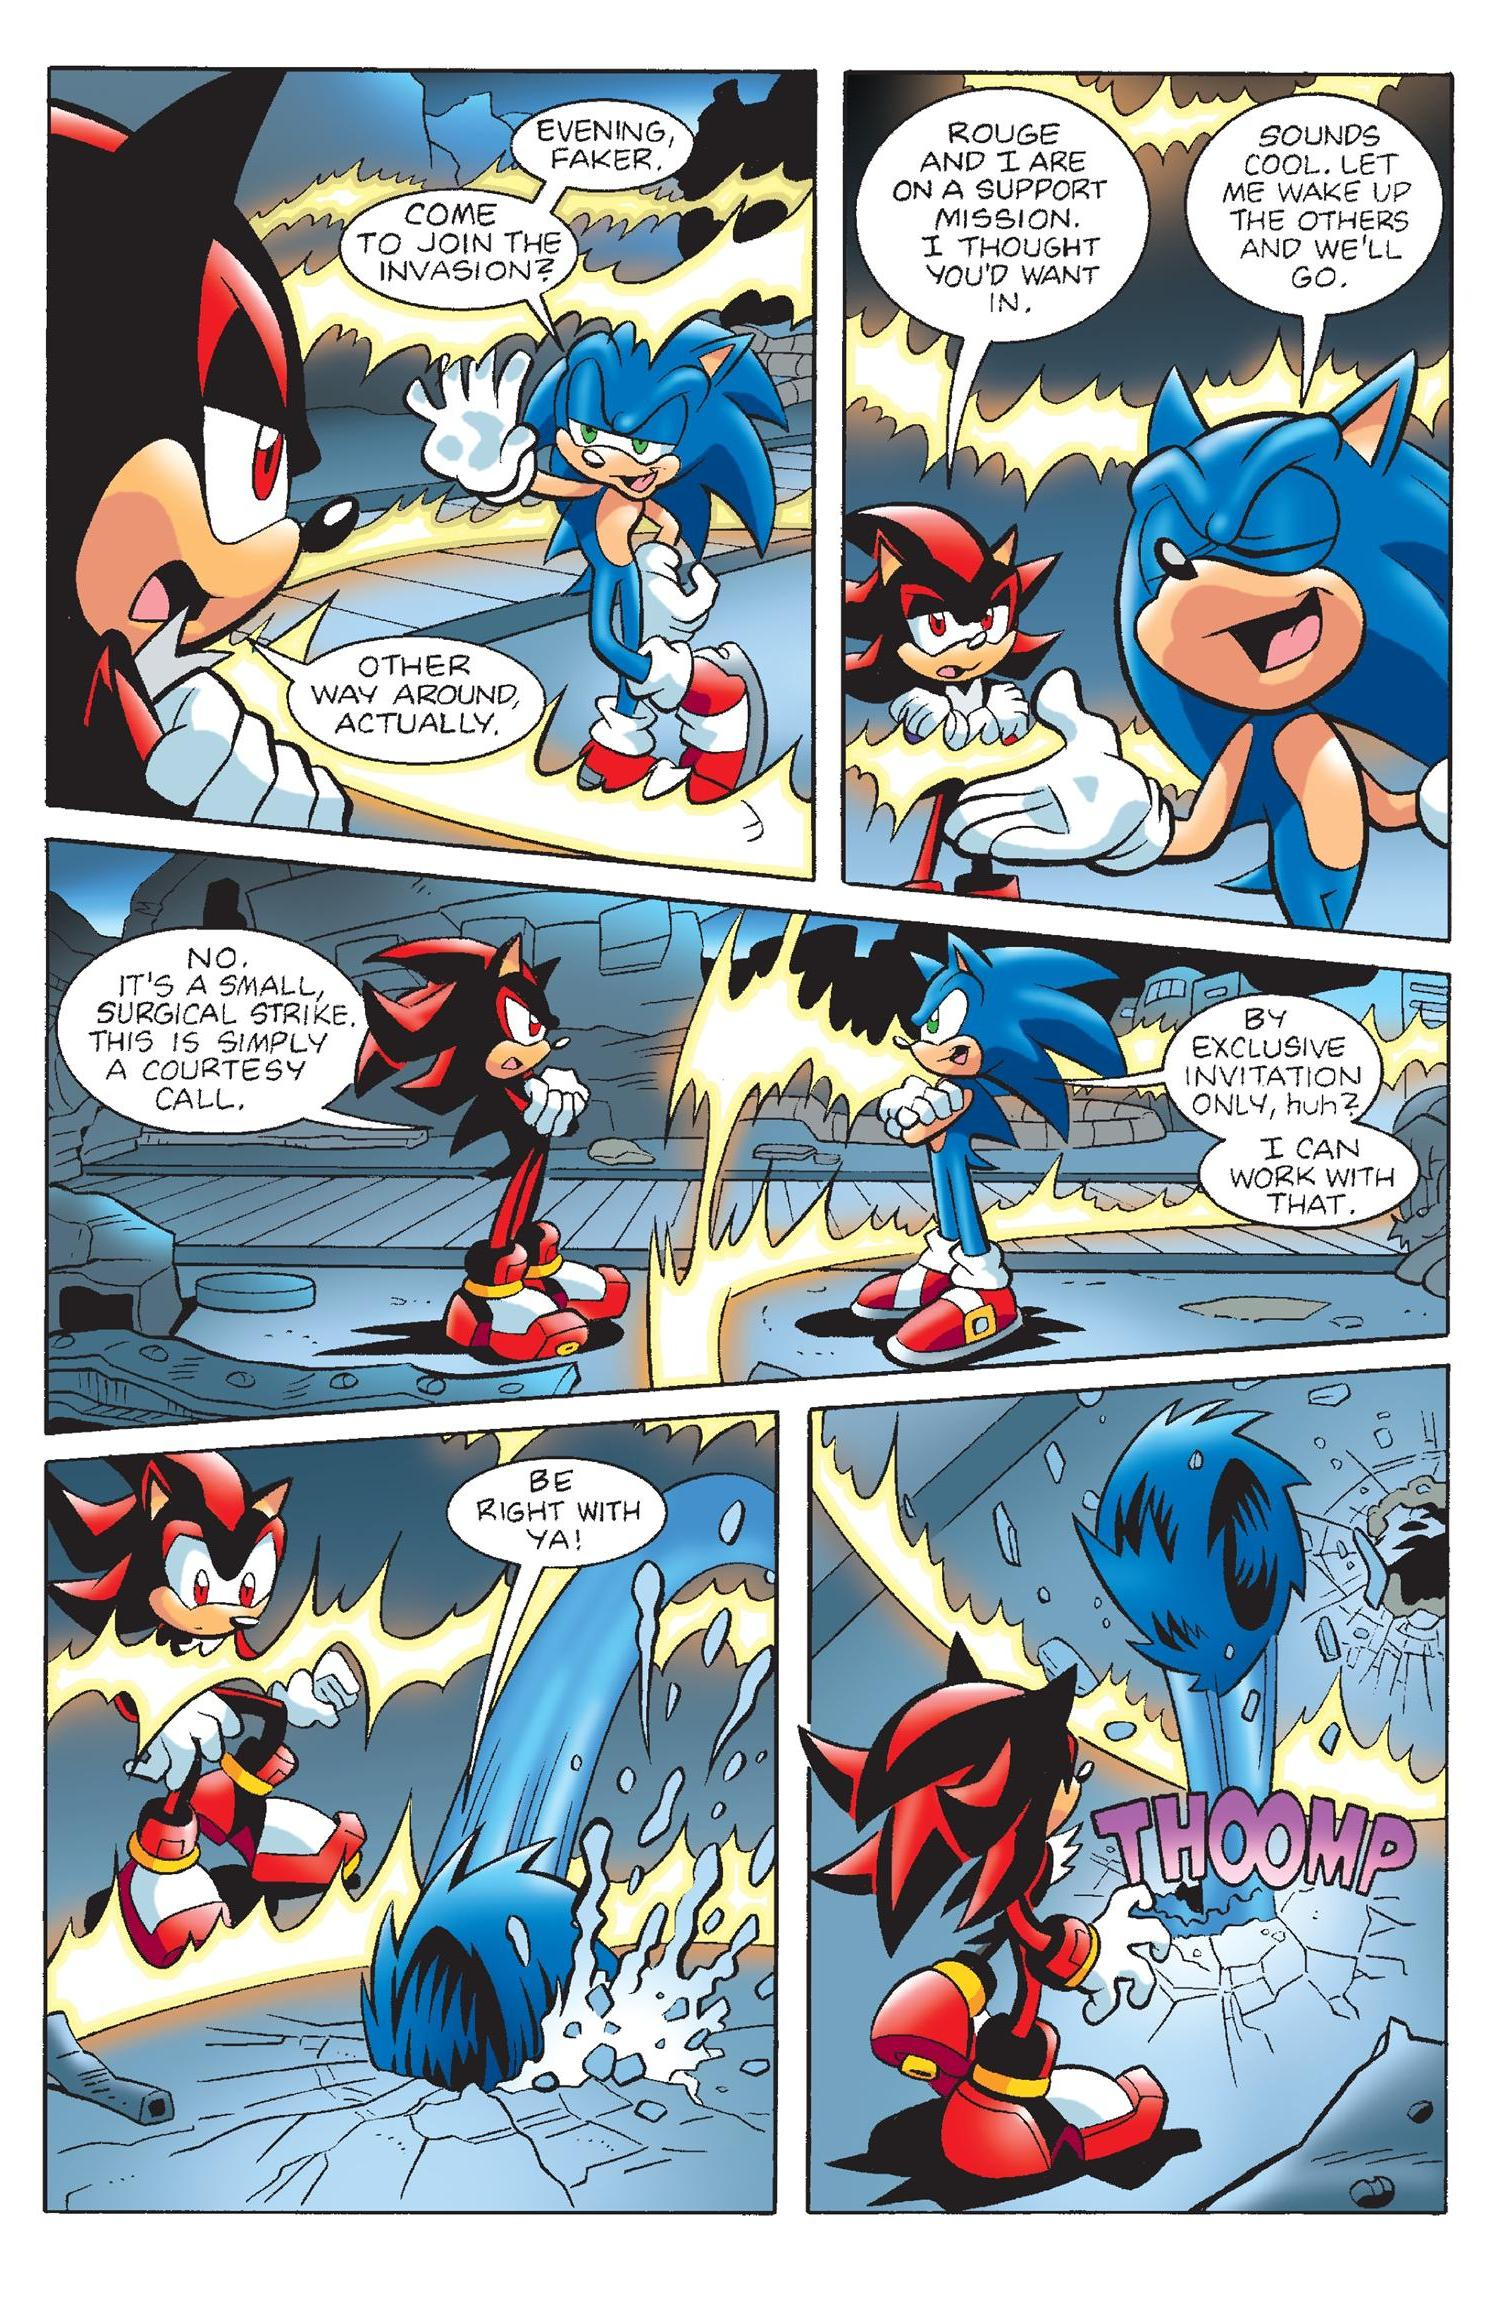 http://img1.wikia.nocookie.net/__cb20140316204636/sonic/images/e/e0/Su2_scan4.jpg